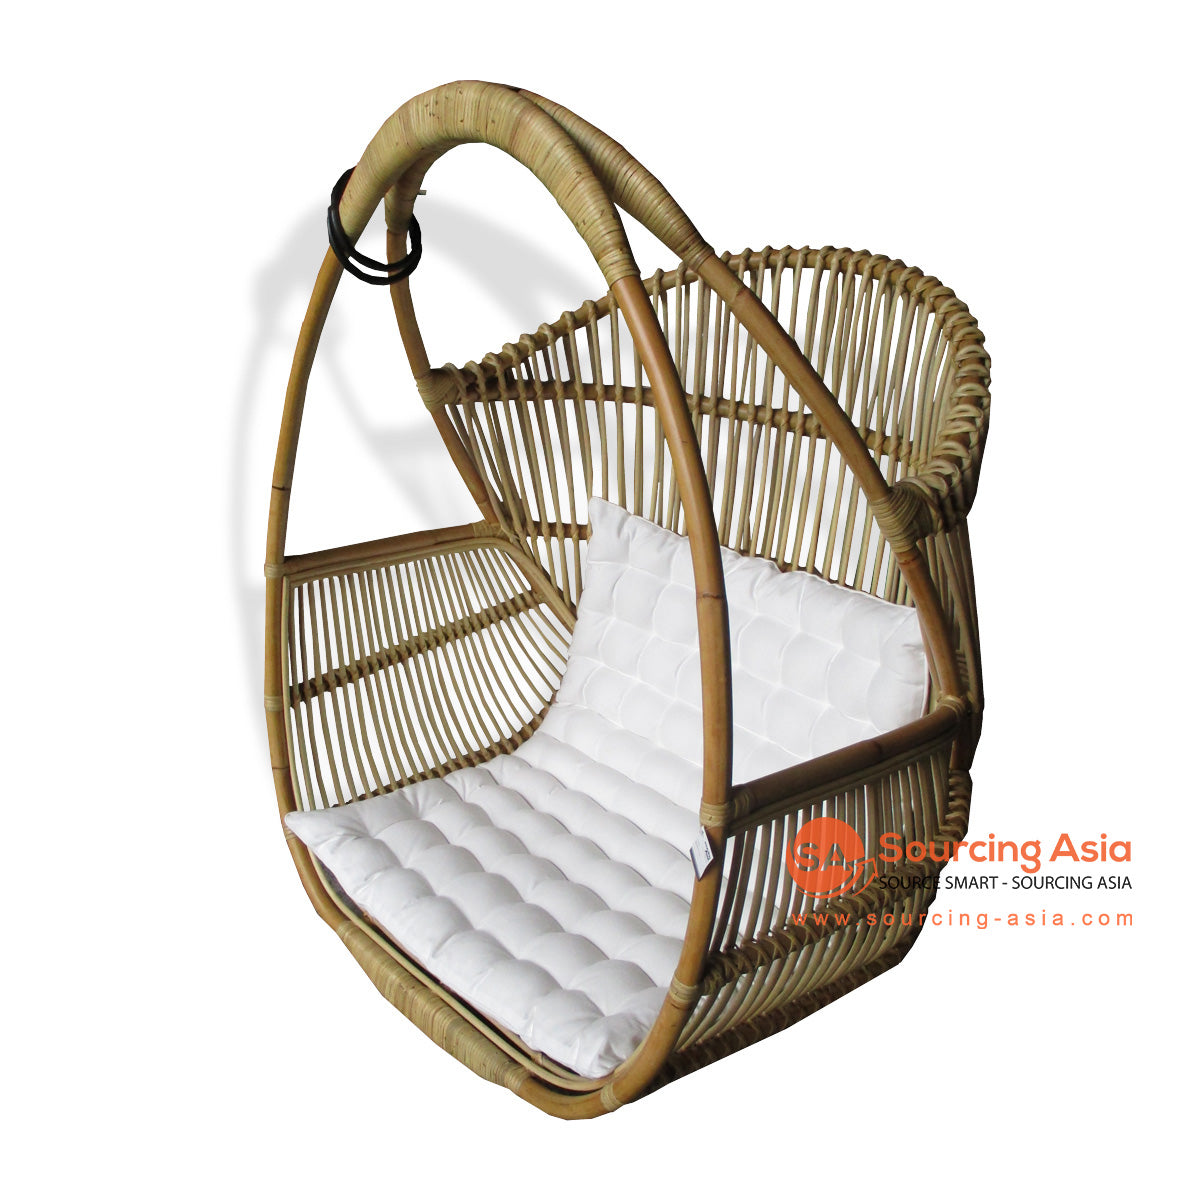 BNT037 DOUBLE HANGING CHAIR